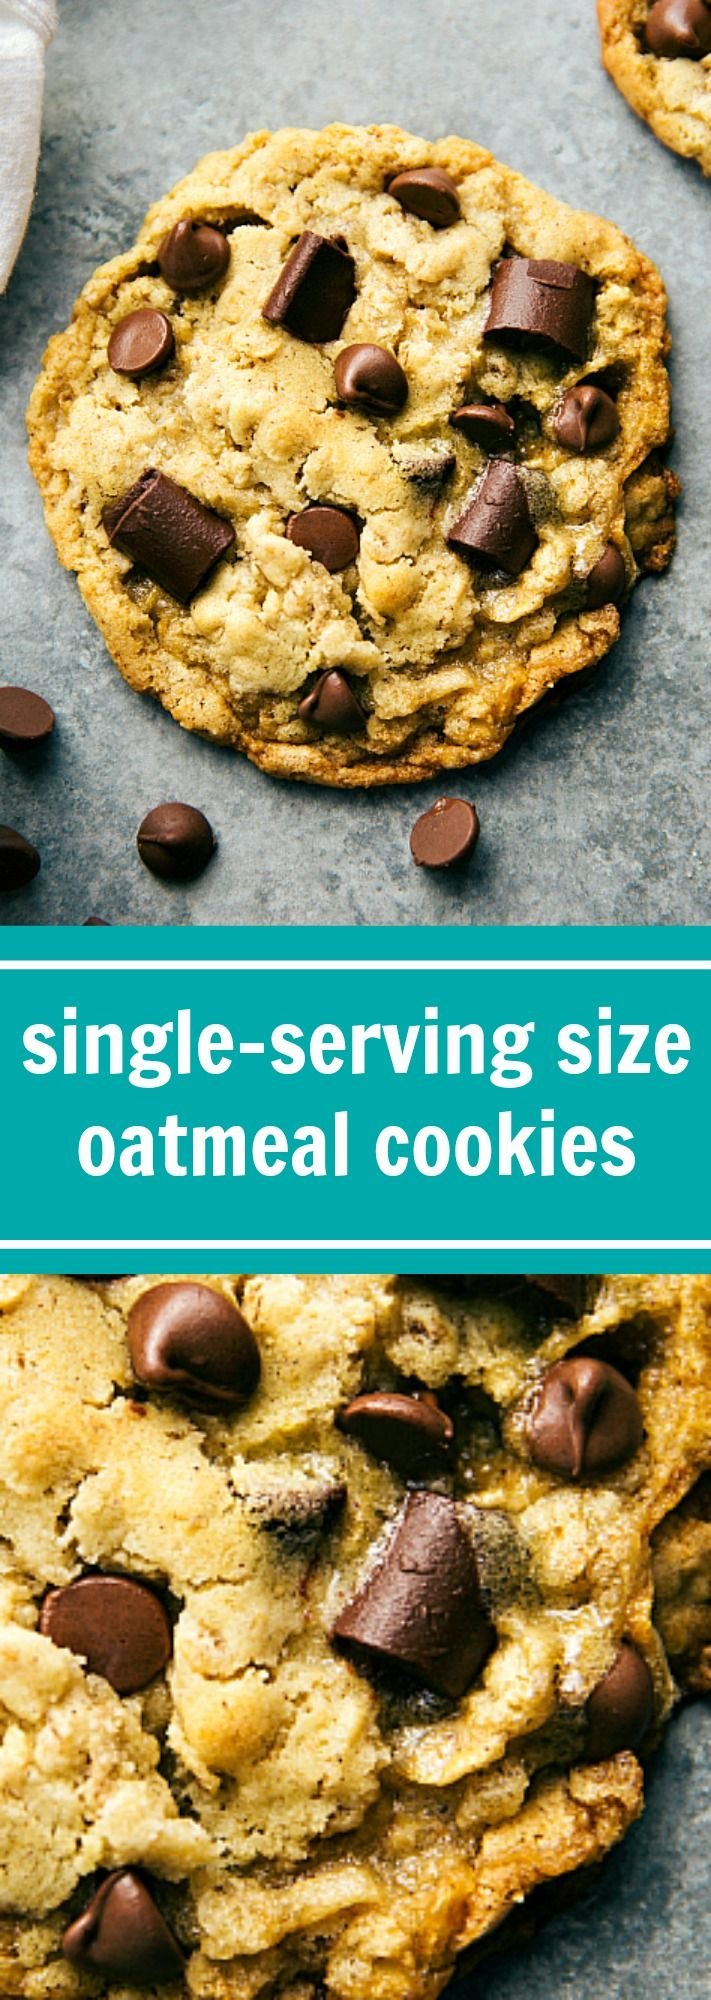 The BEST Single Serve Oatmeal Chocolate Chip Cookies. Reader said, These are the best oatmeal chocolate chip cookies I've ever had